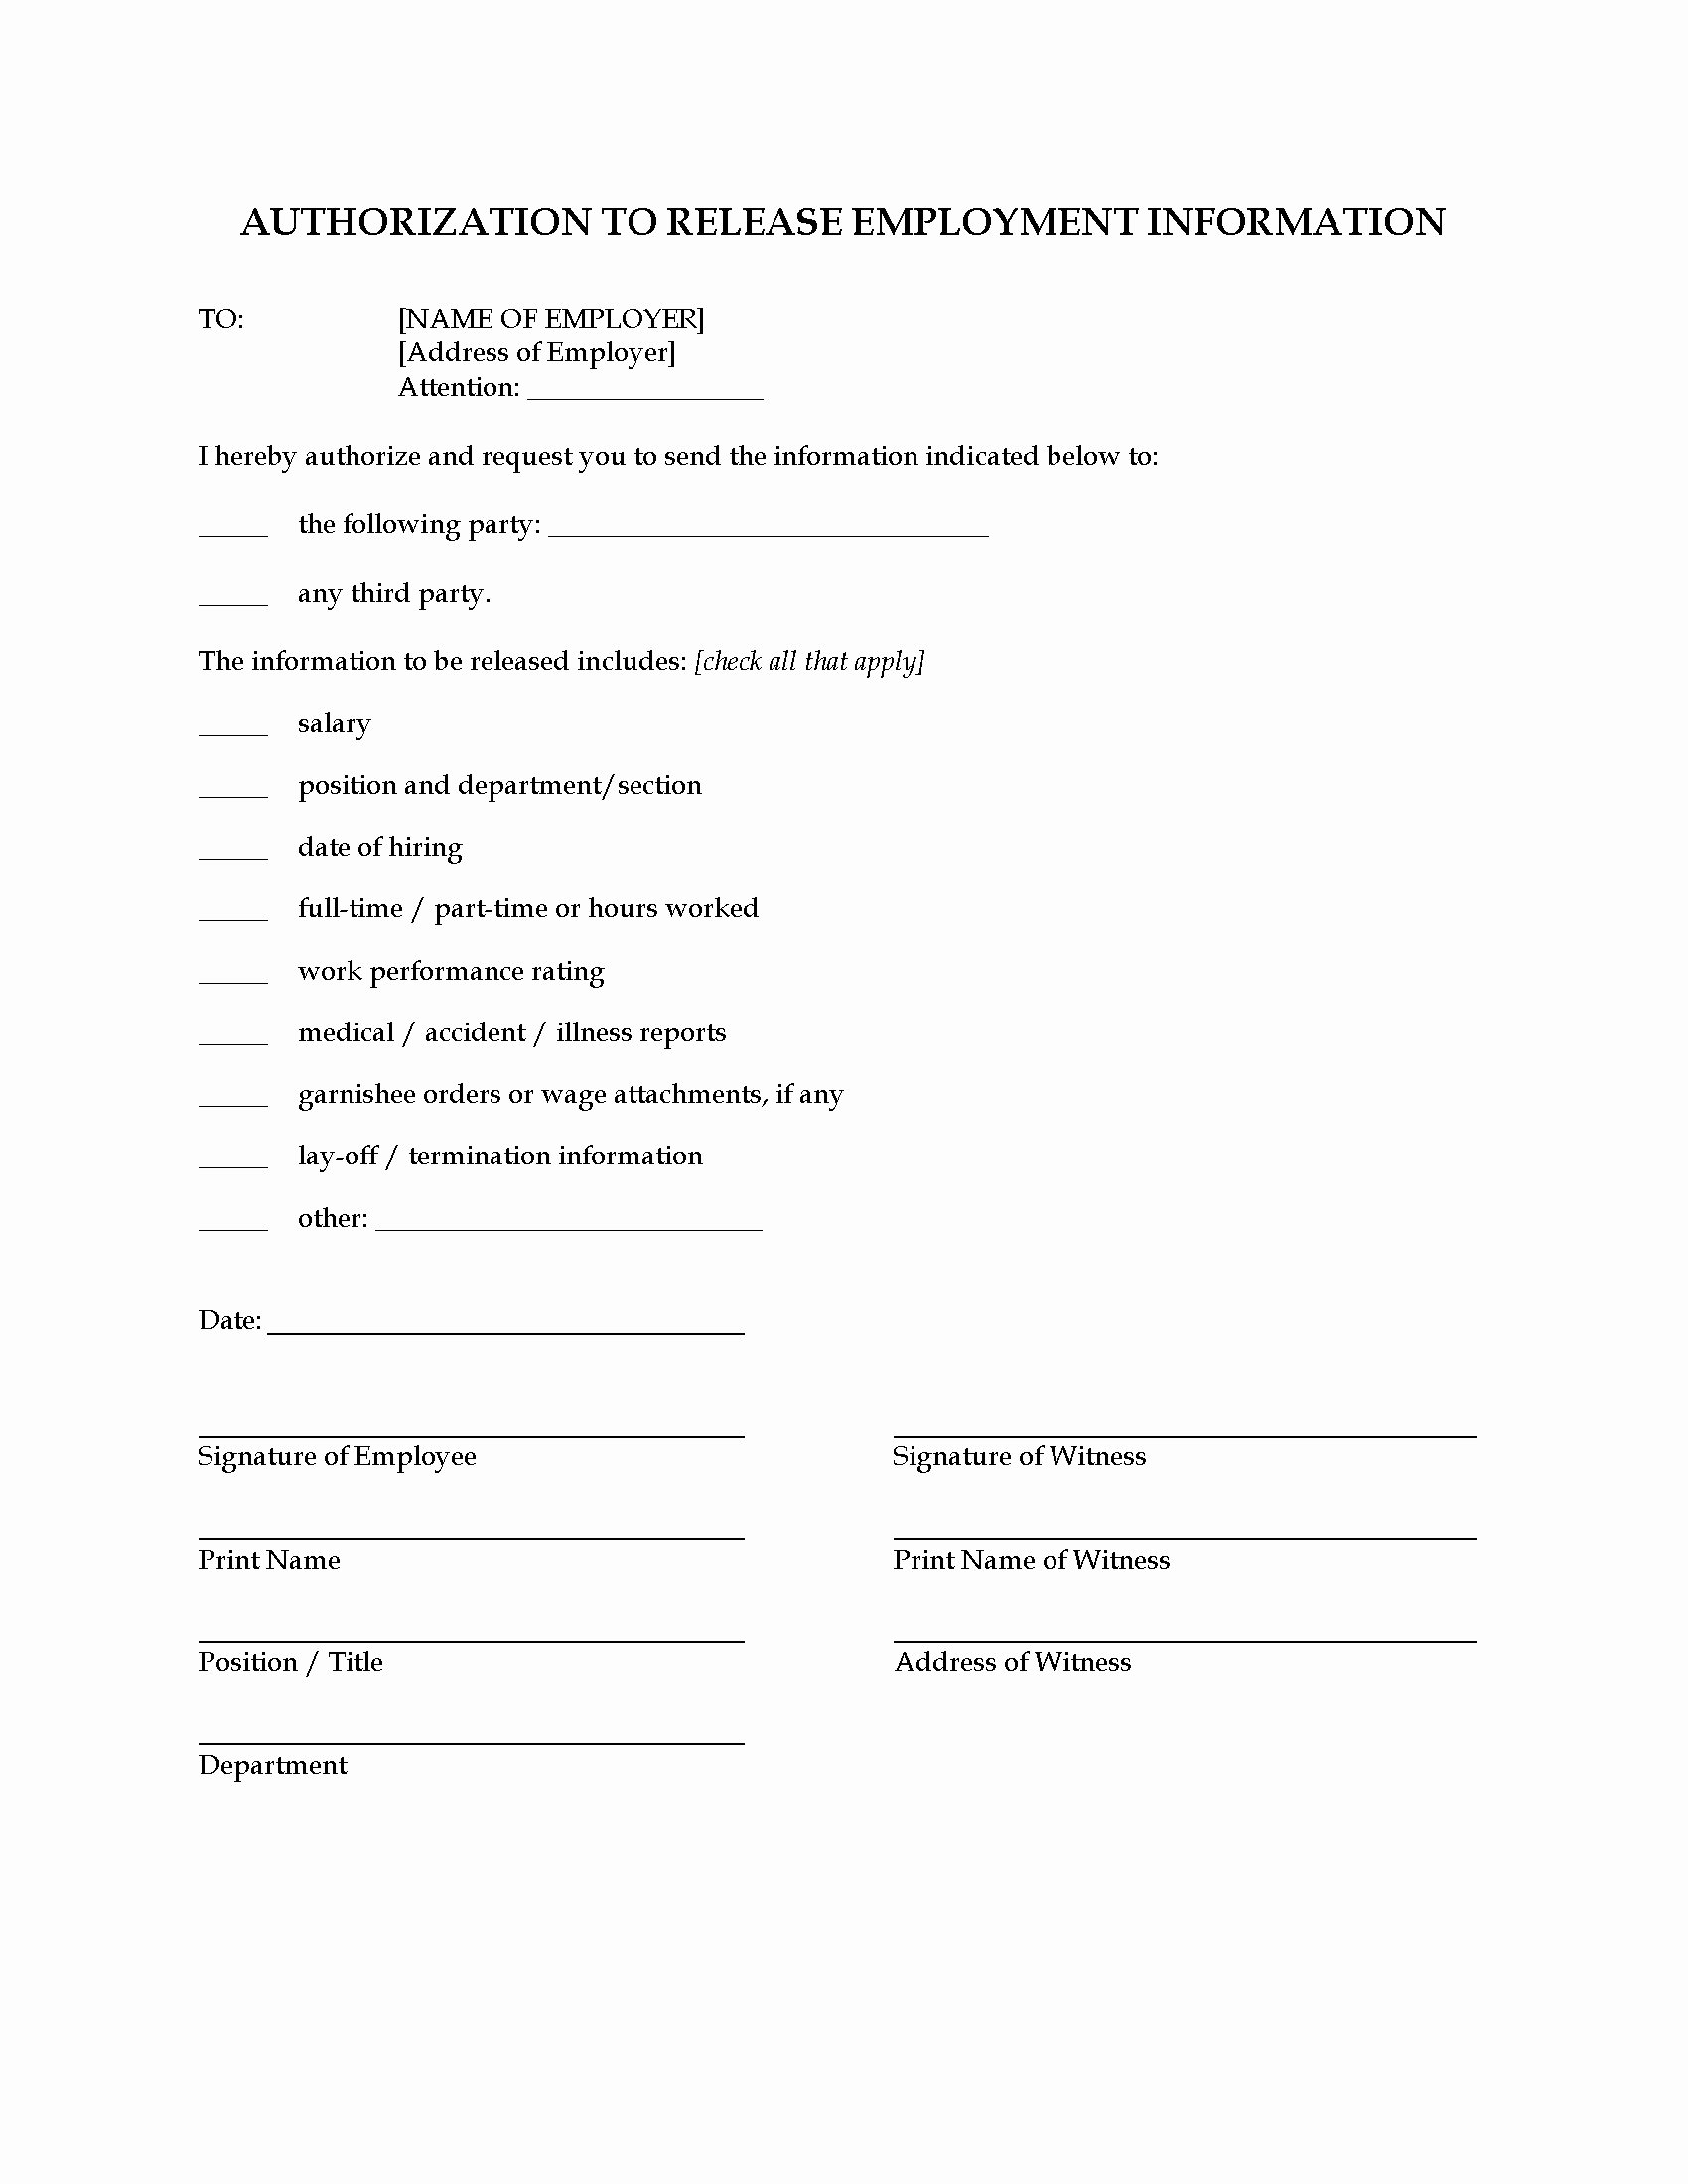 3rd Party Authorization form Template Awesome Consent to Release Employment Information